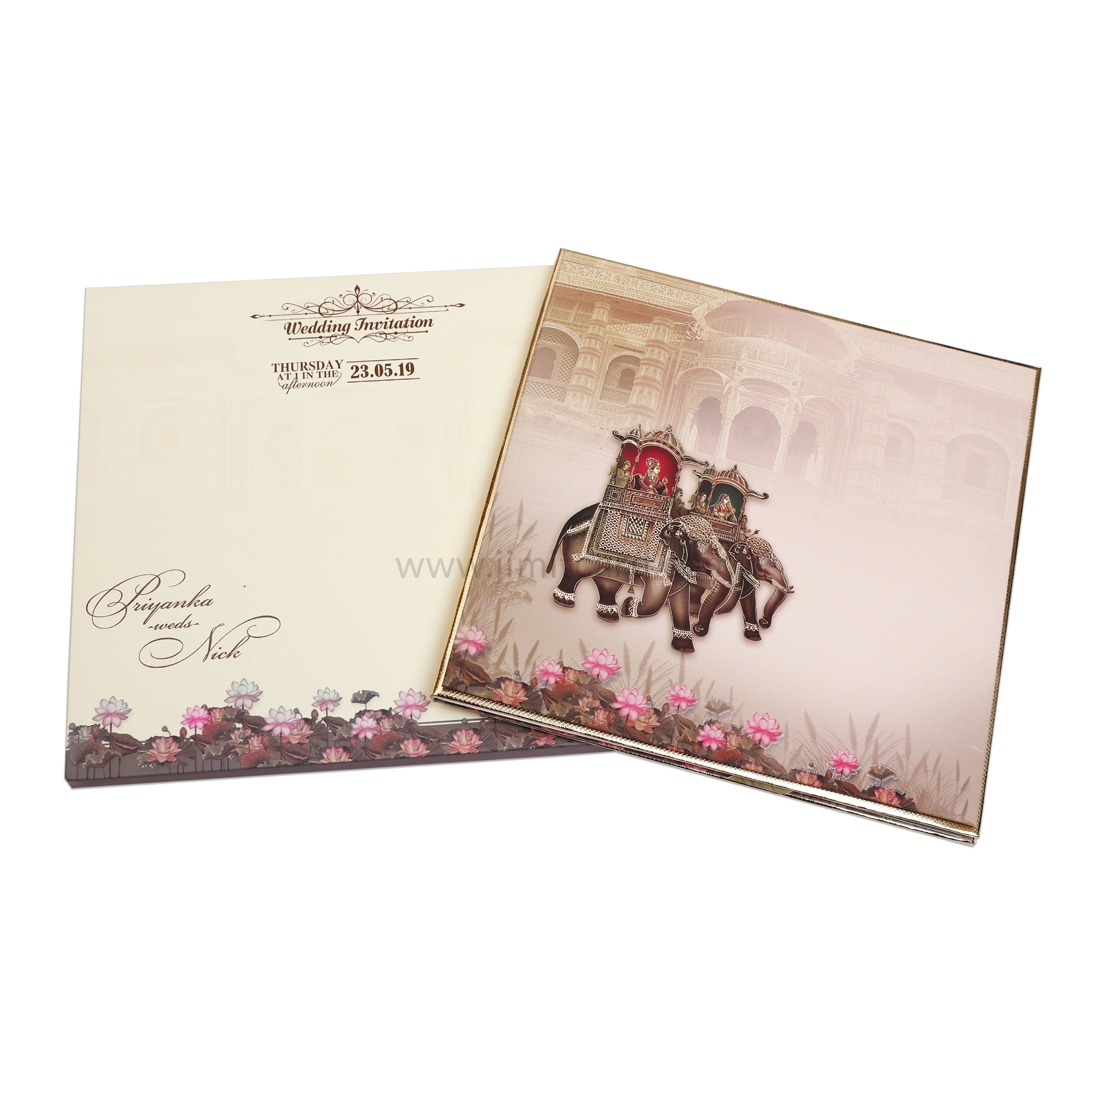 Brown and Cream Color With Royal Palace And Elephant Design-0